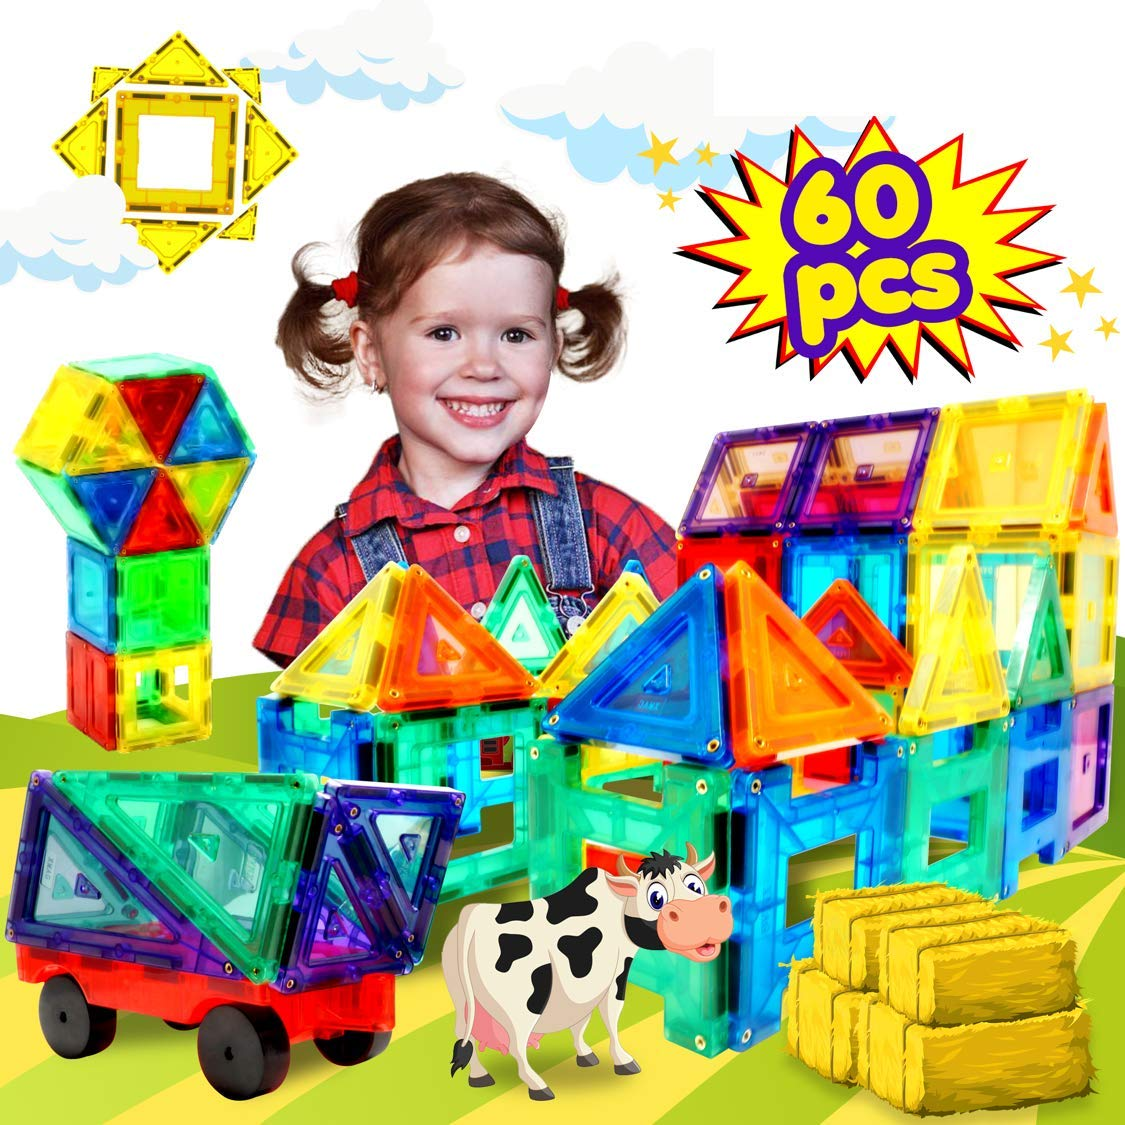 Magnetic Building Tiles Toys Set - Tiles Block Toy Kit for Kids - STEM Educational Construction Stacking Shapes - 60 Pieces by WhizBuilders (Image #9)